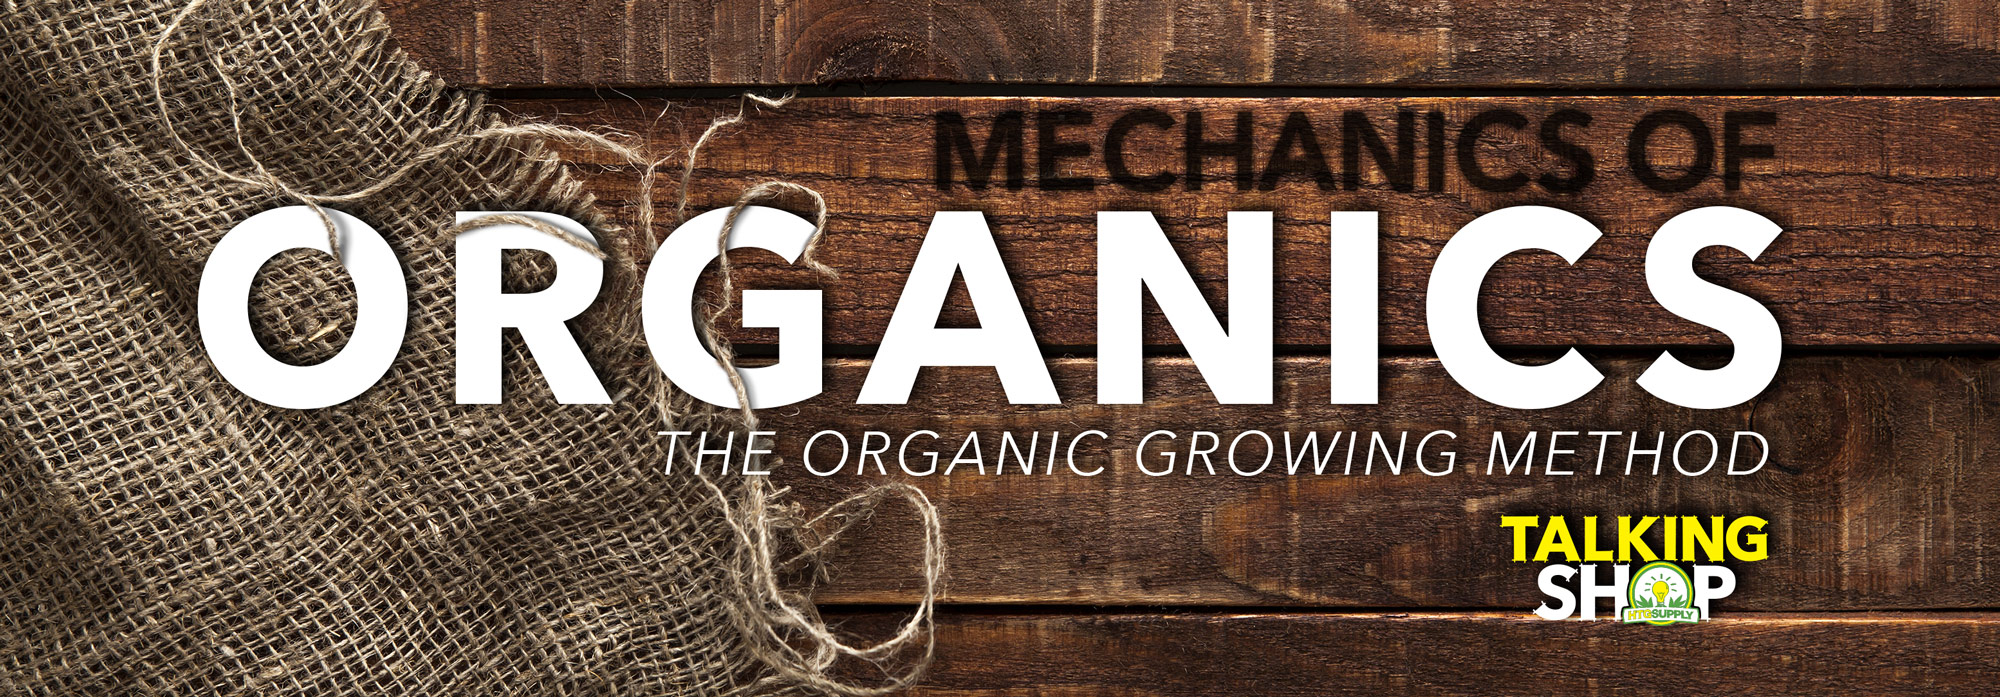 The Organic Growing Method